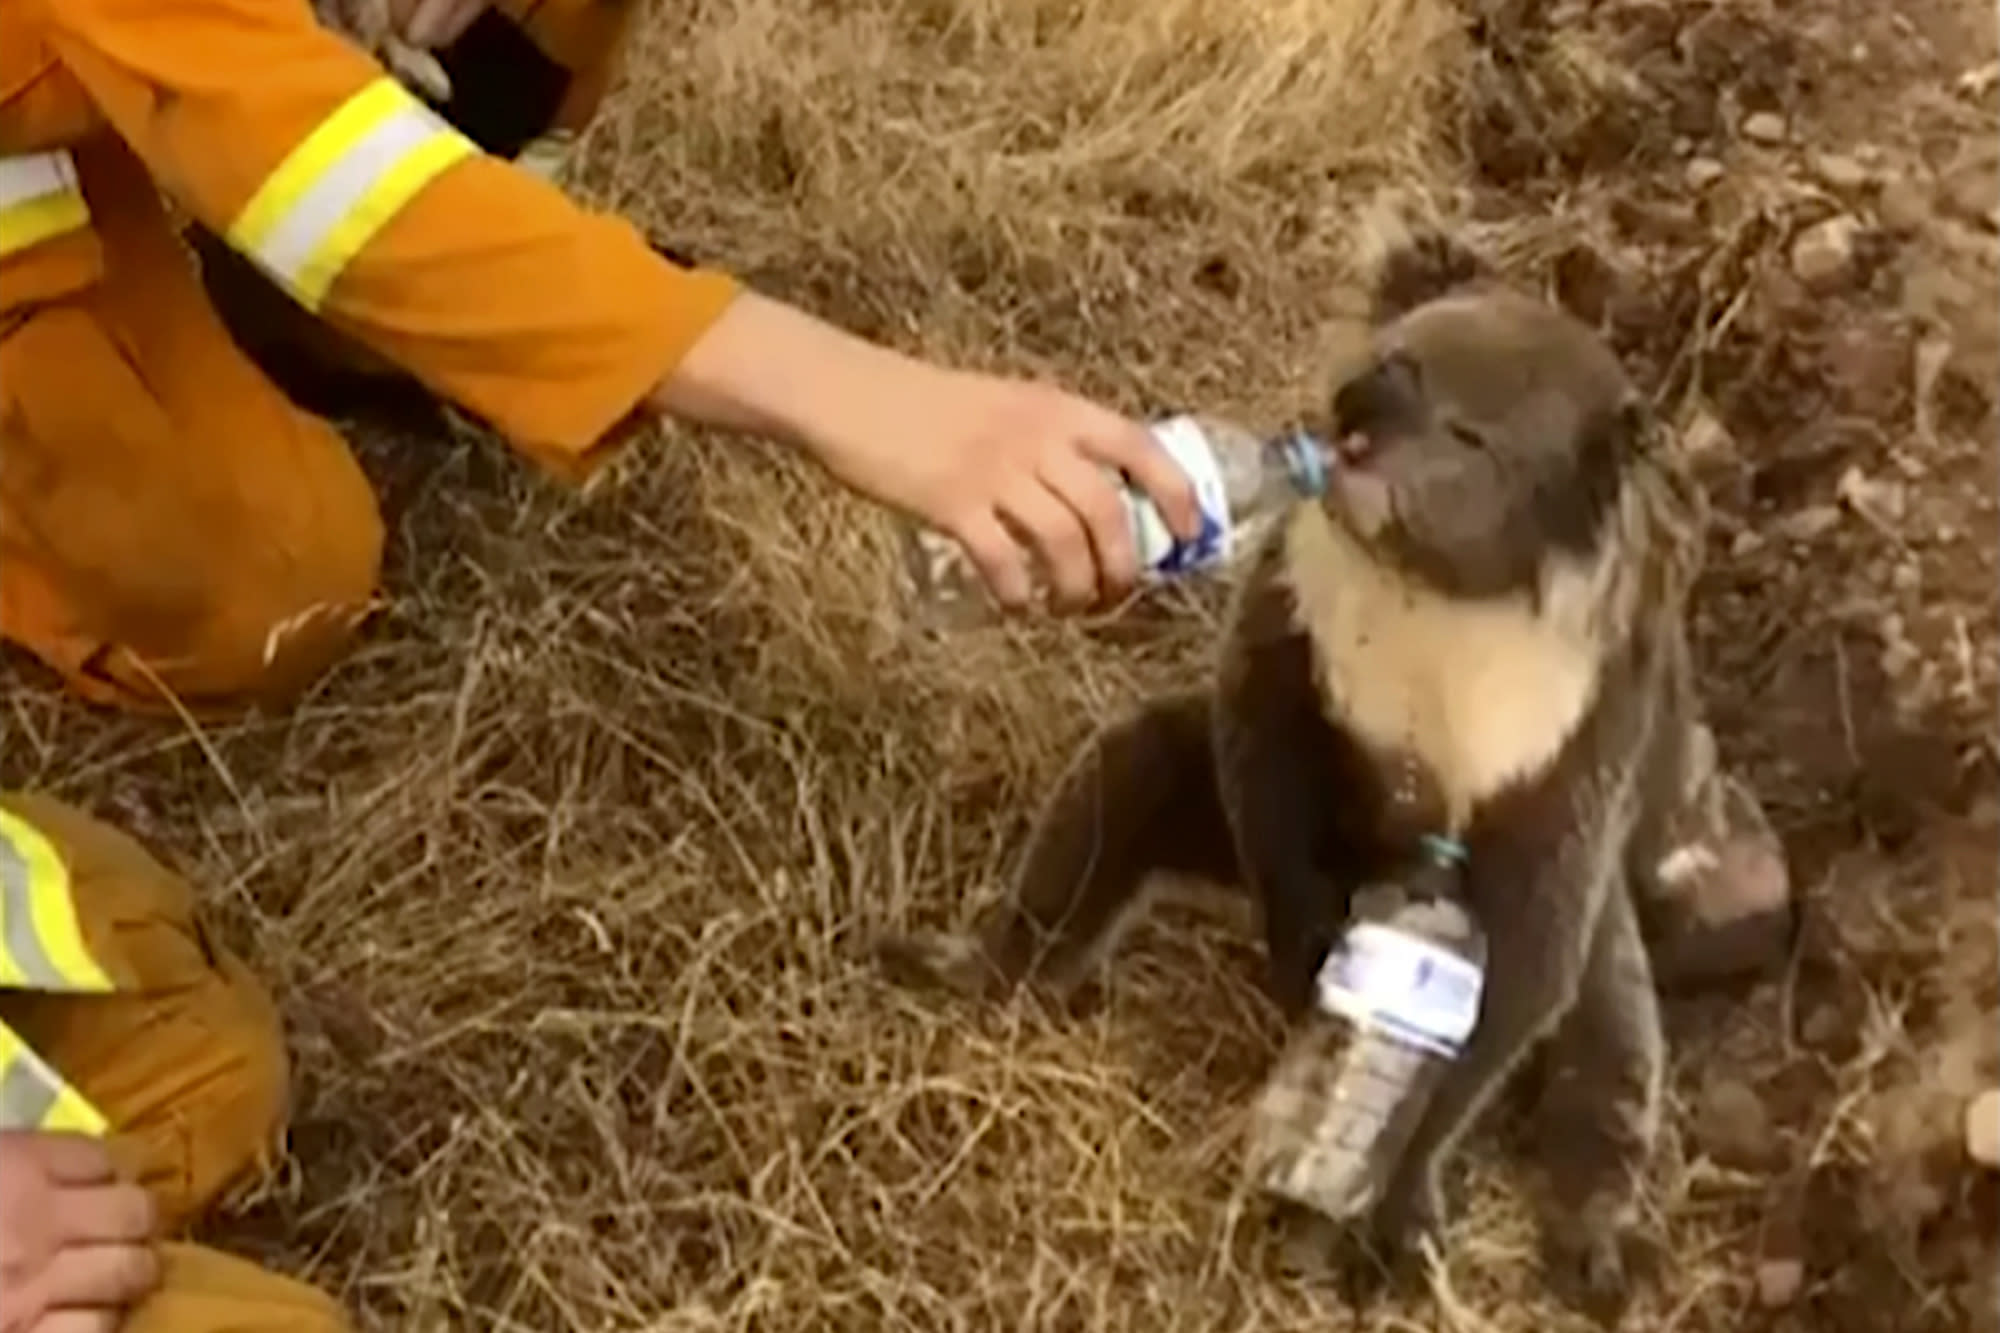 FIEL - In this image made from video taken on Dec. 22, 2019, and provided by Oakbank Balhannah CFS, a koala drinks water from a bottle given by a firefighter in Cudlee Creek, South Australia. Thousands of koalas are feared to have died in a wildfire-ravaged area north of Sydney, further diminishing Australia's iconic marsupial, while the fire danger accelerated Saturday, Dec. 28, 2019 in the country's east as temperatures soared. (Oakbank Balhannah CFS via AP, File)